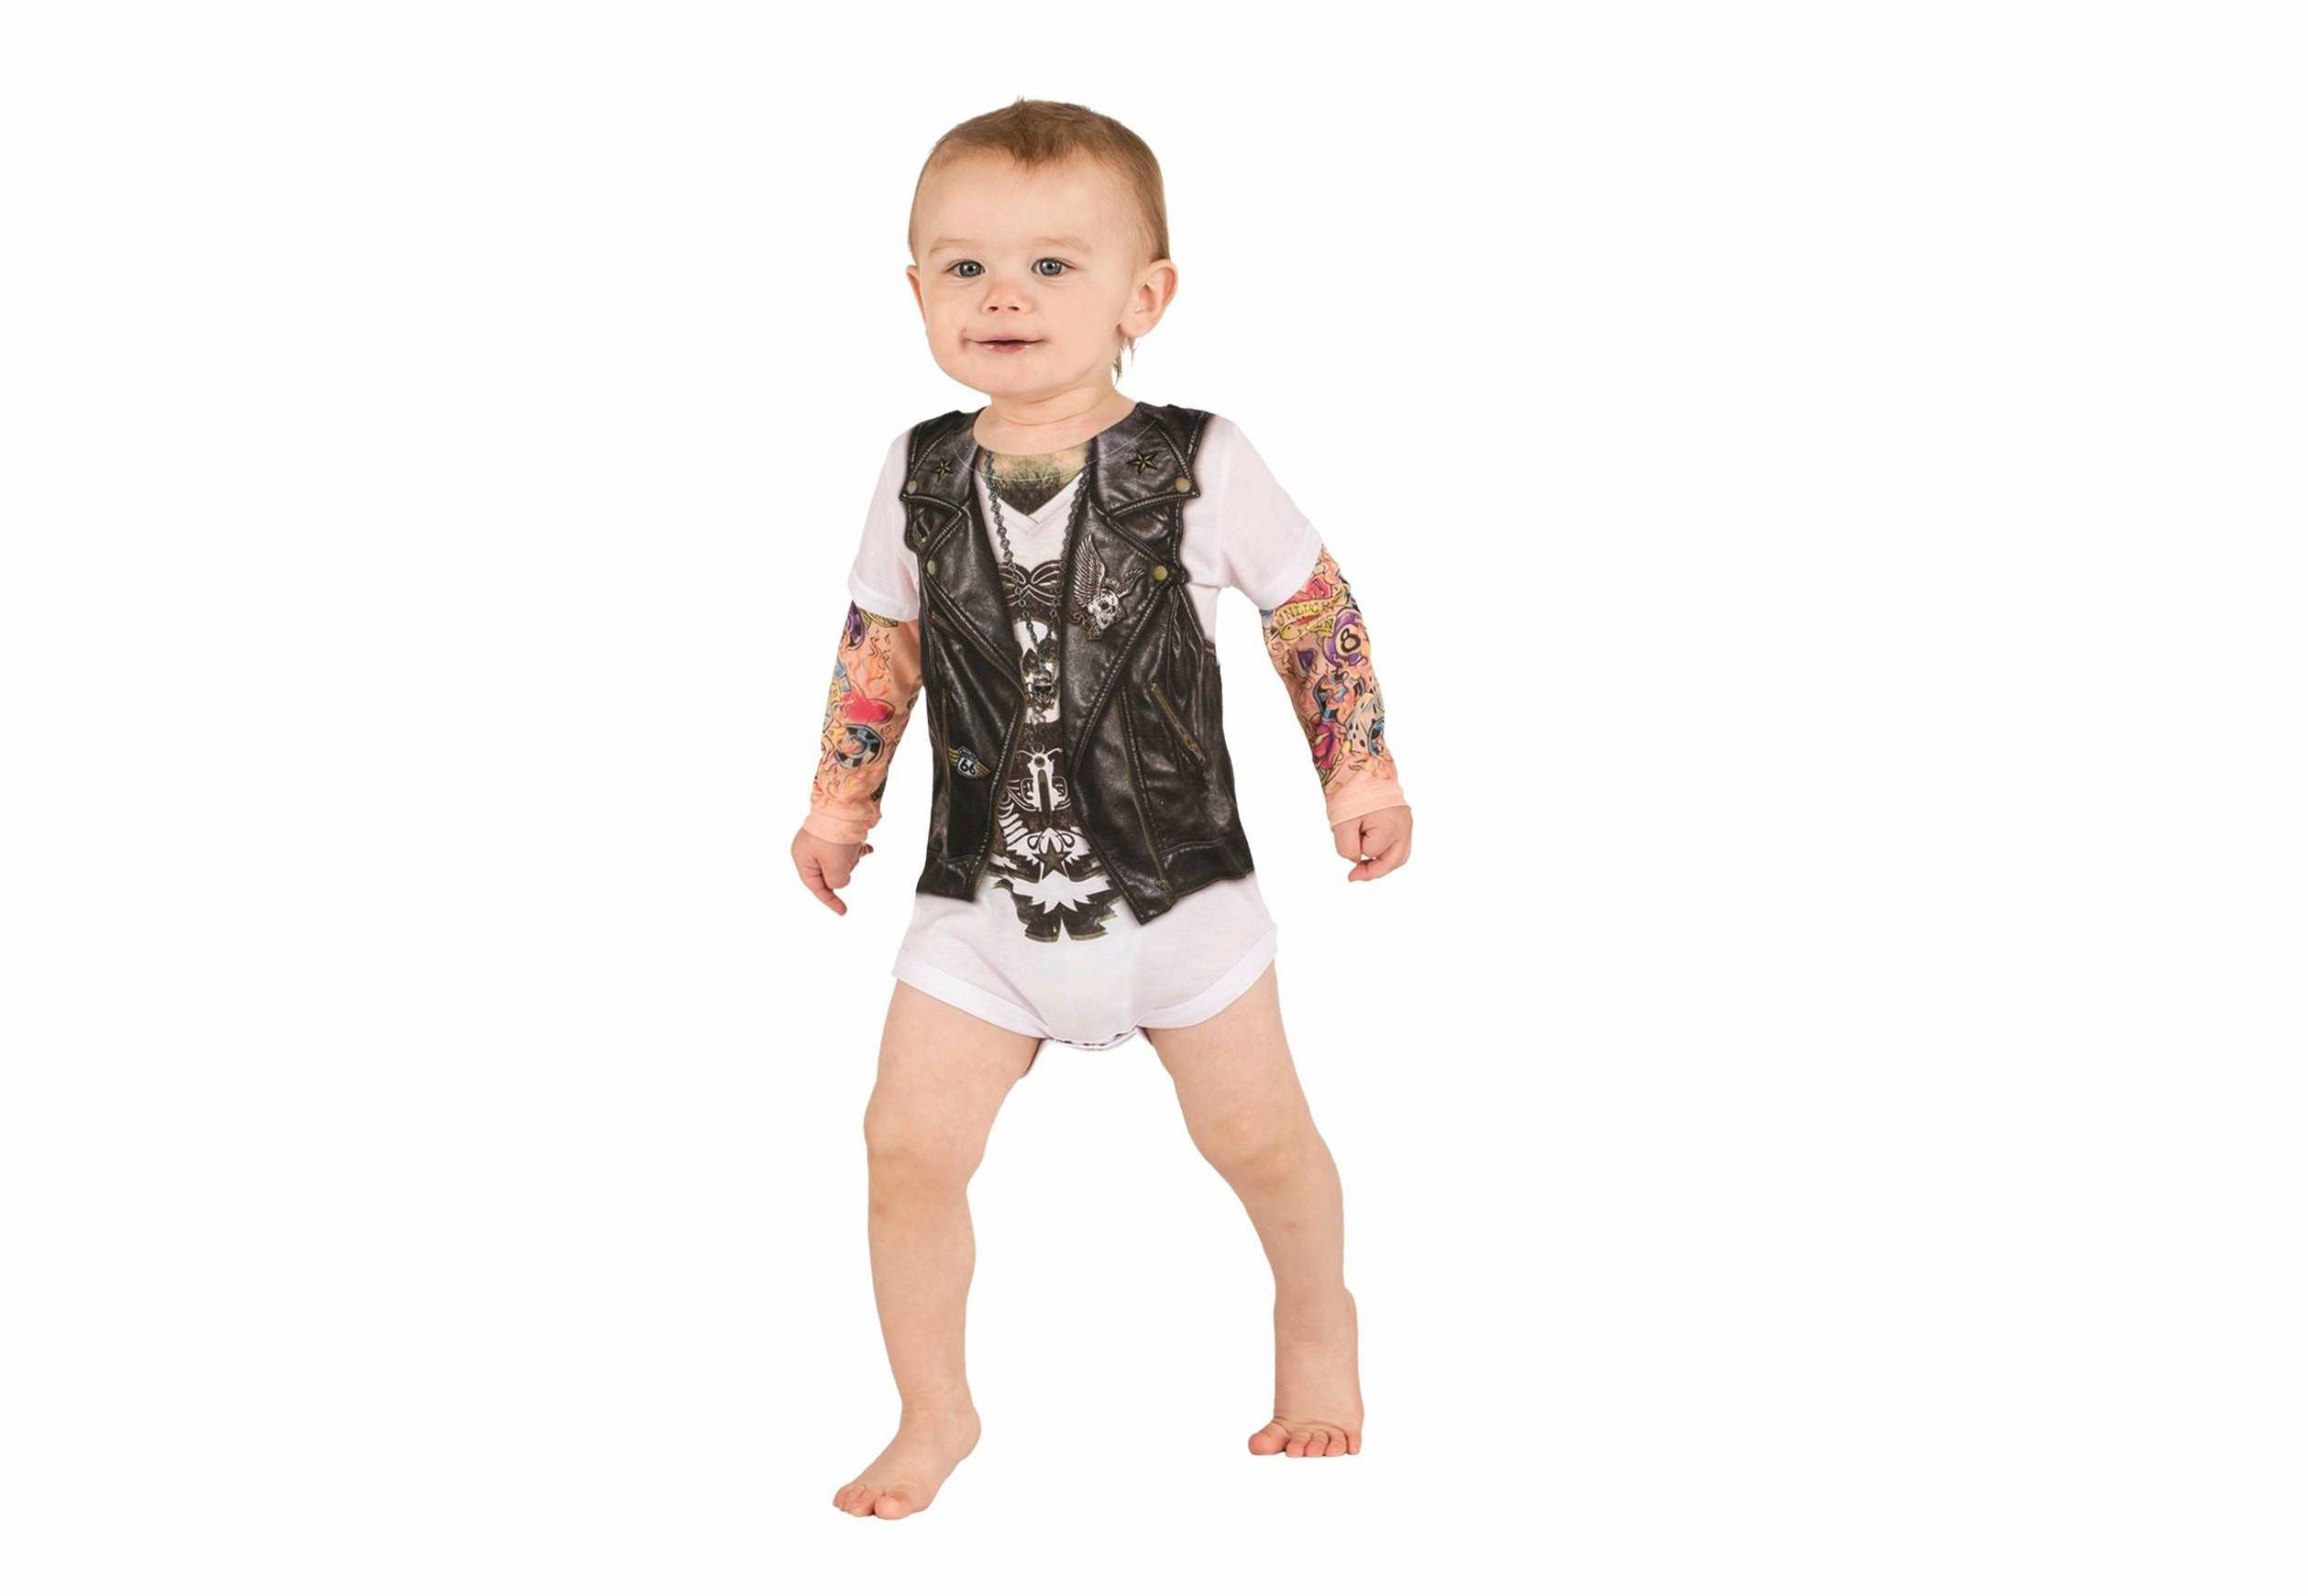 1d21d4fbe 20 Totally Bizarre Baby Halloween Costumes